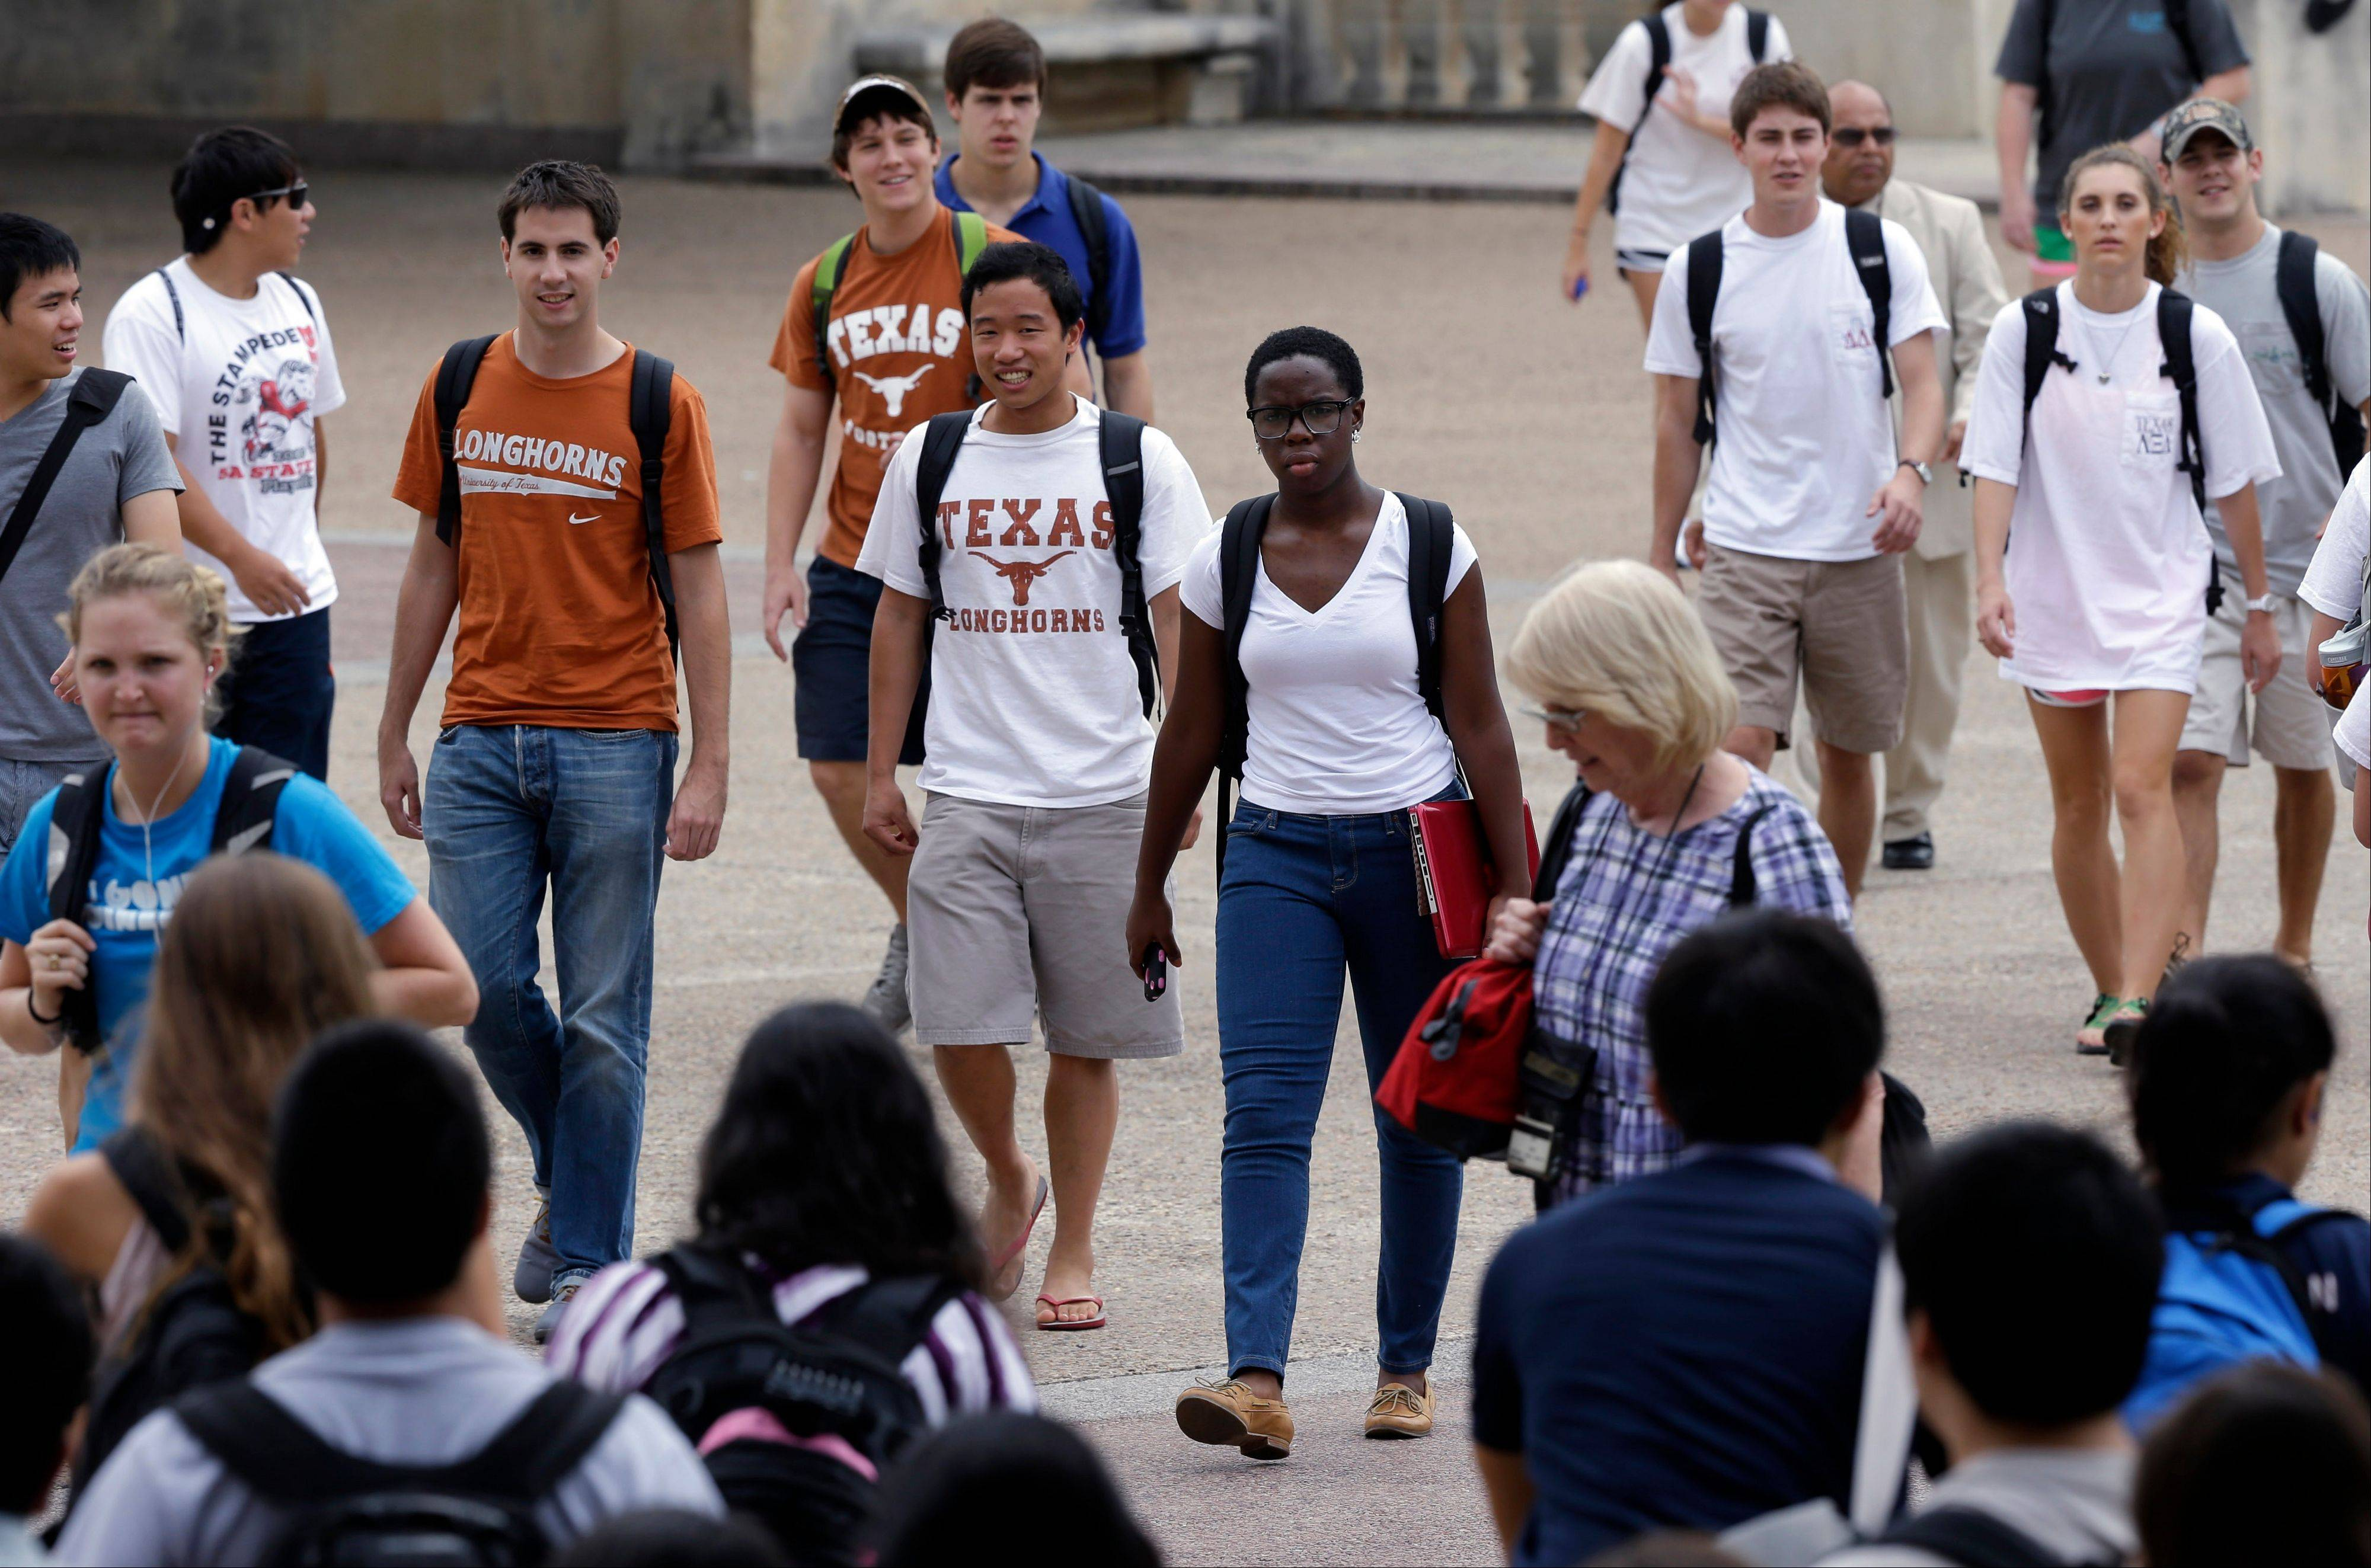 Students walk through the University of Texas at Austin campus in Austin, Texas. This giant flagship campus -- once slow to integrate -- is now among the most diverse the country.